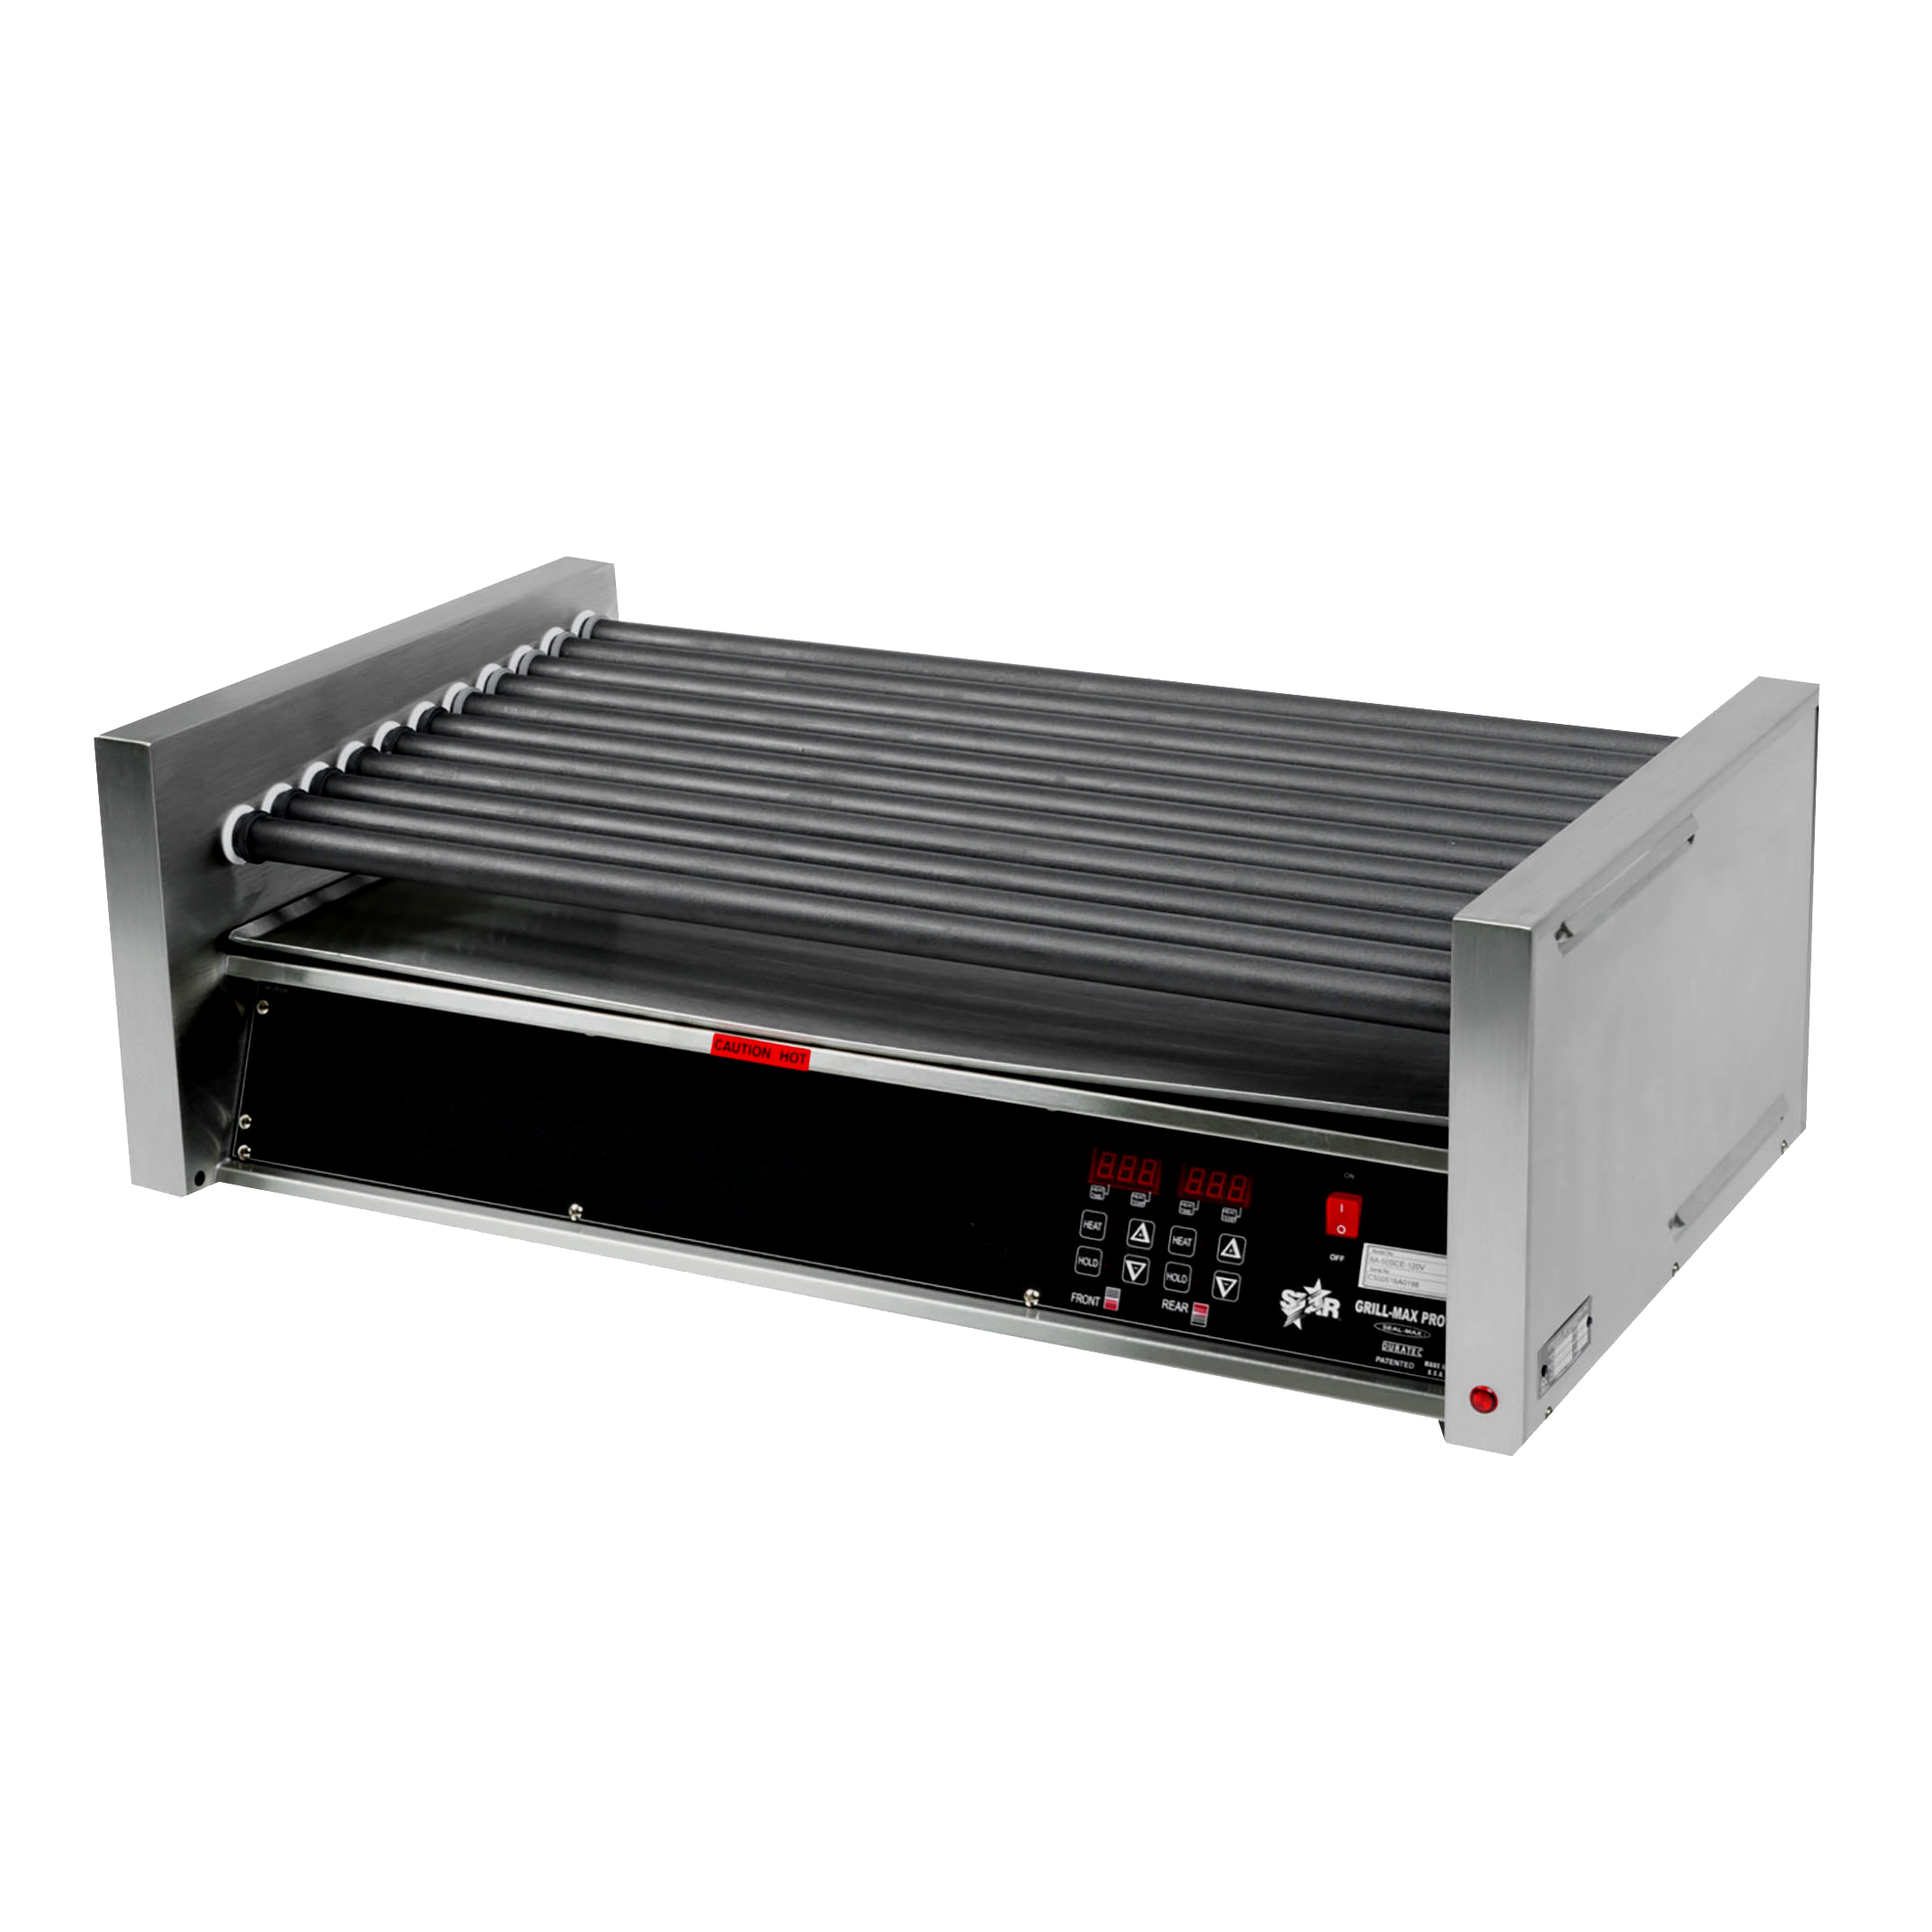 Star 75SCE hot dog grill